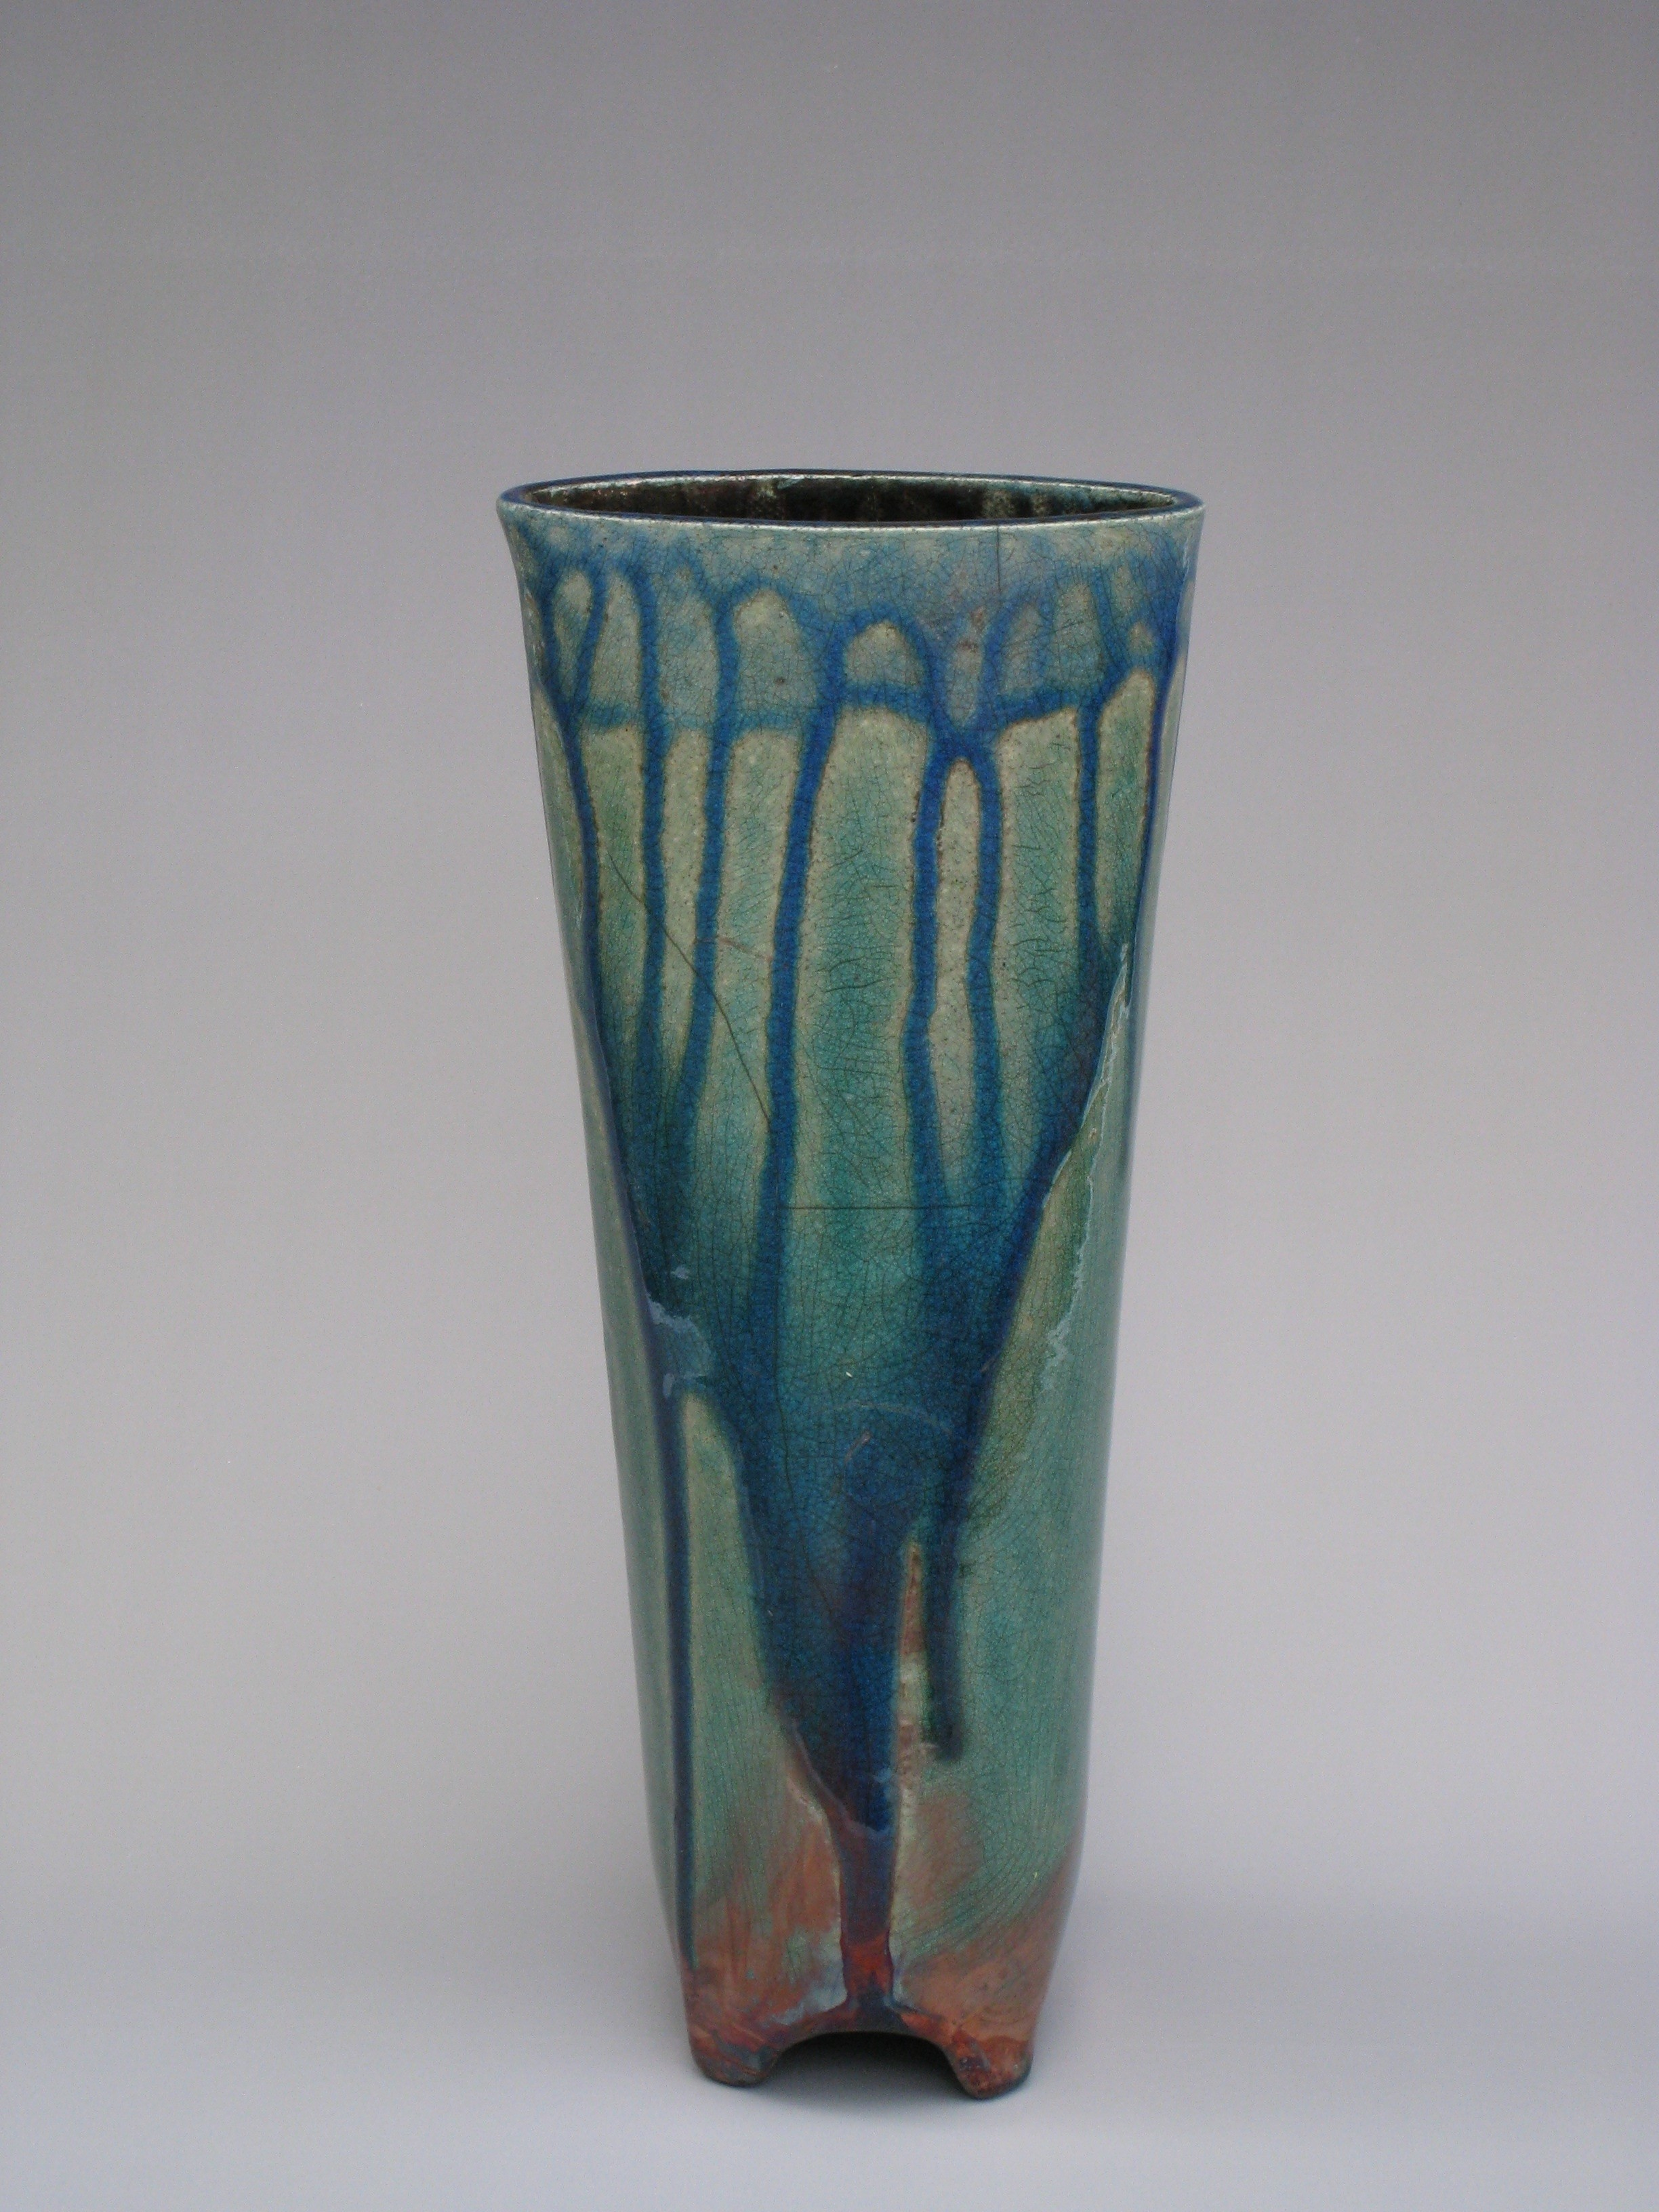 Barrel Footed Vase